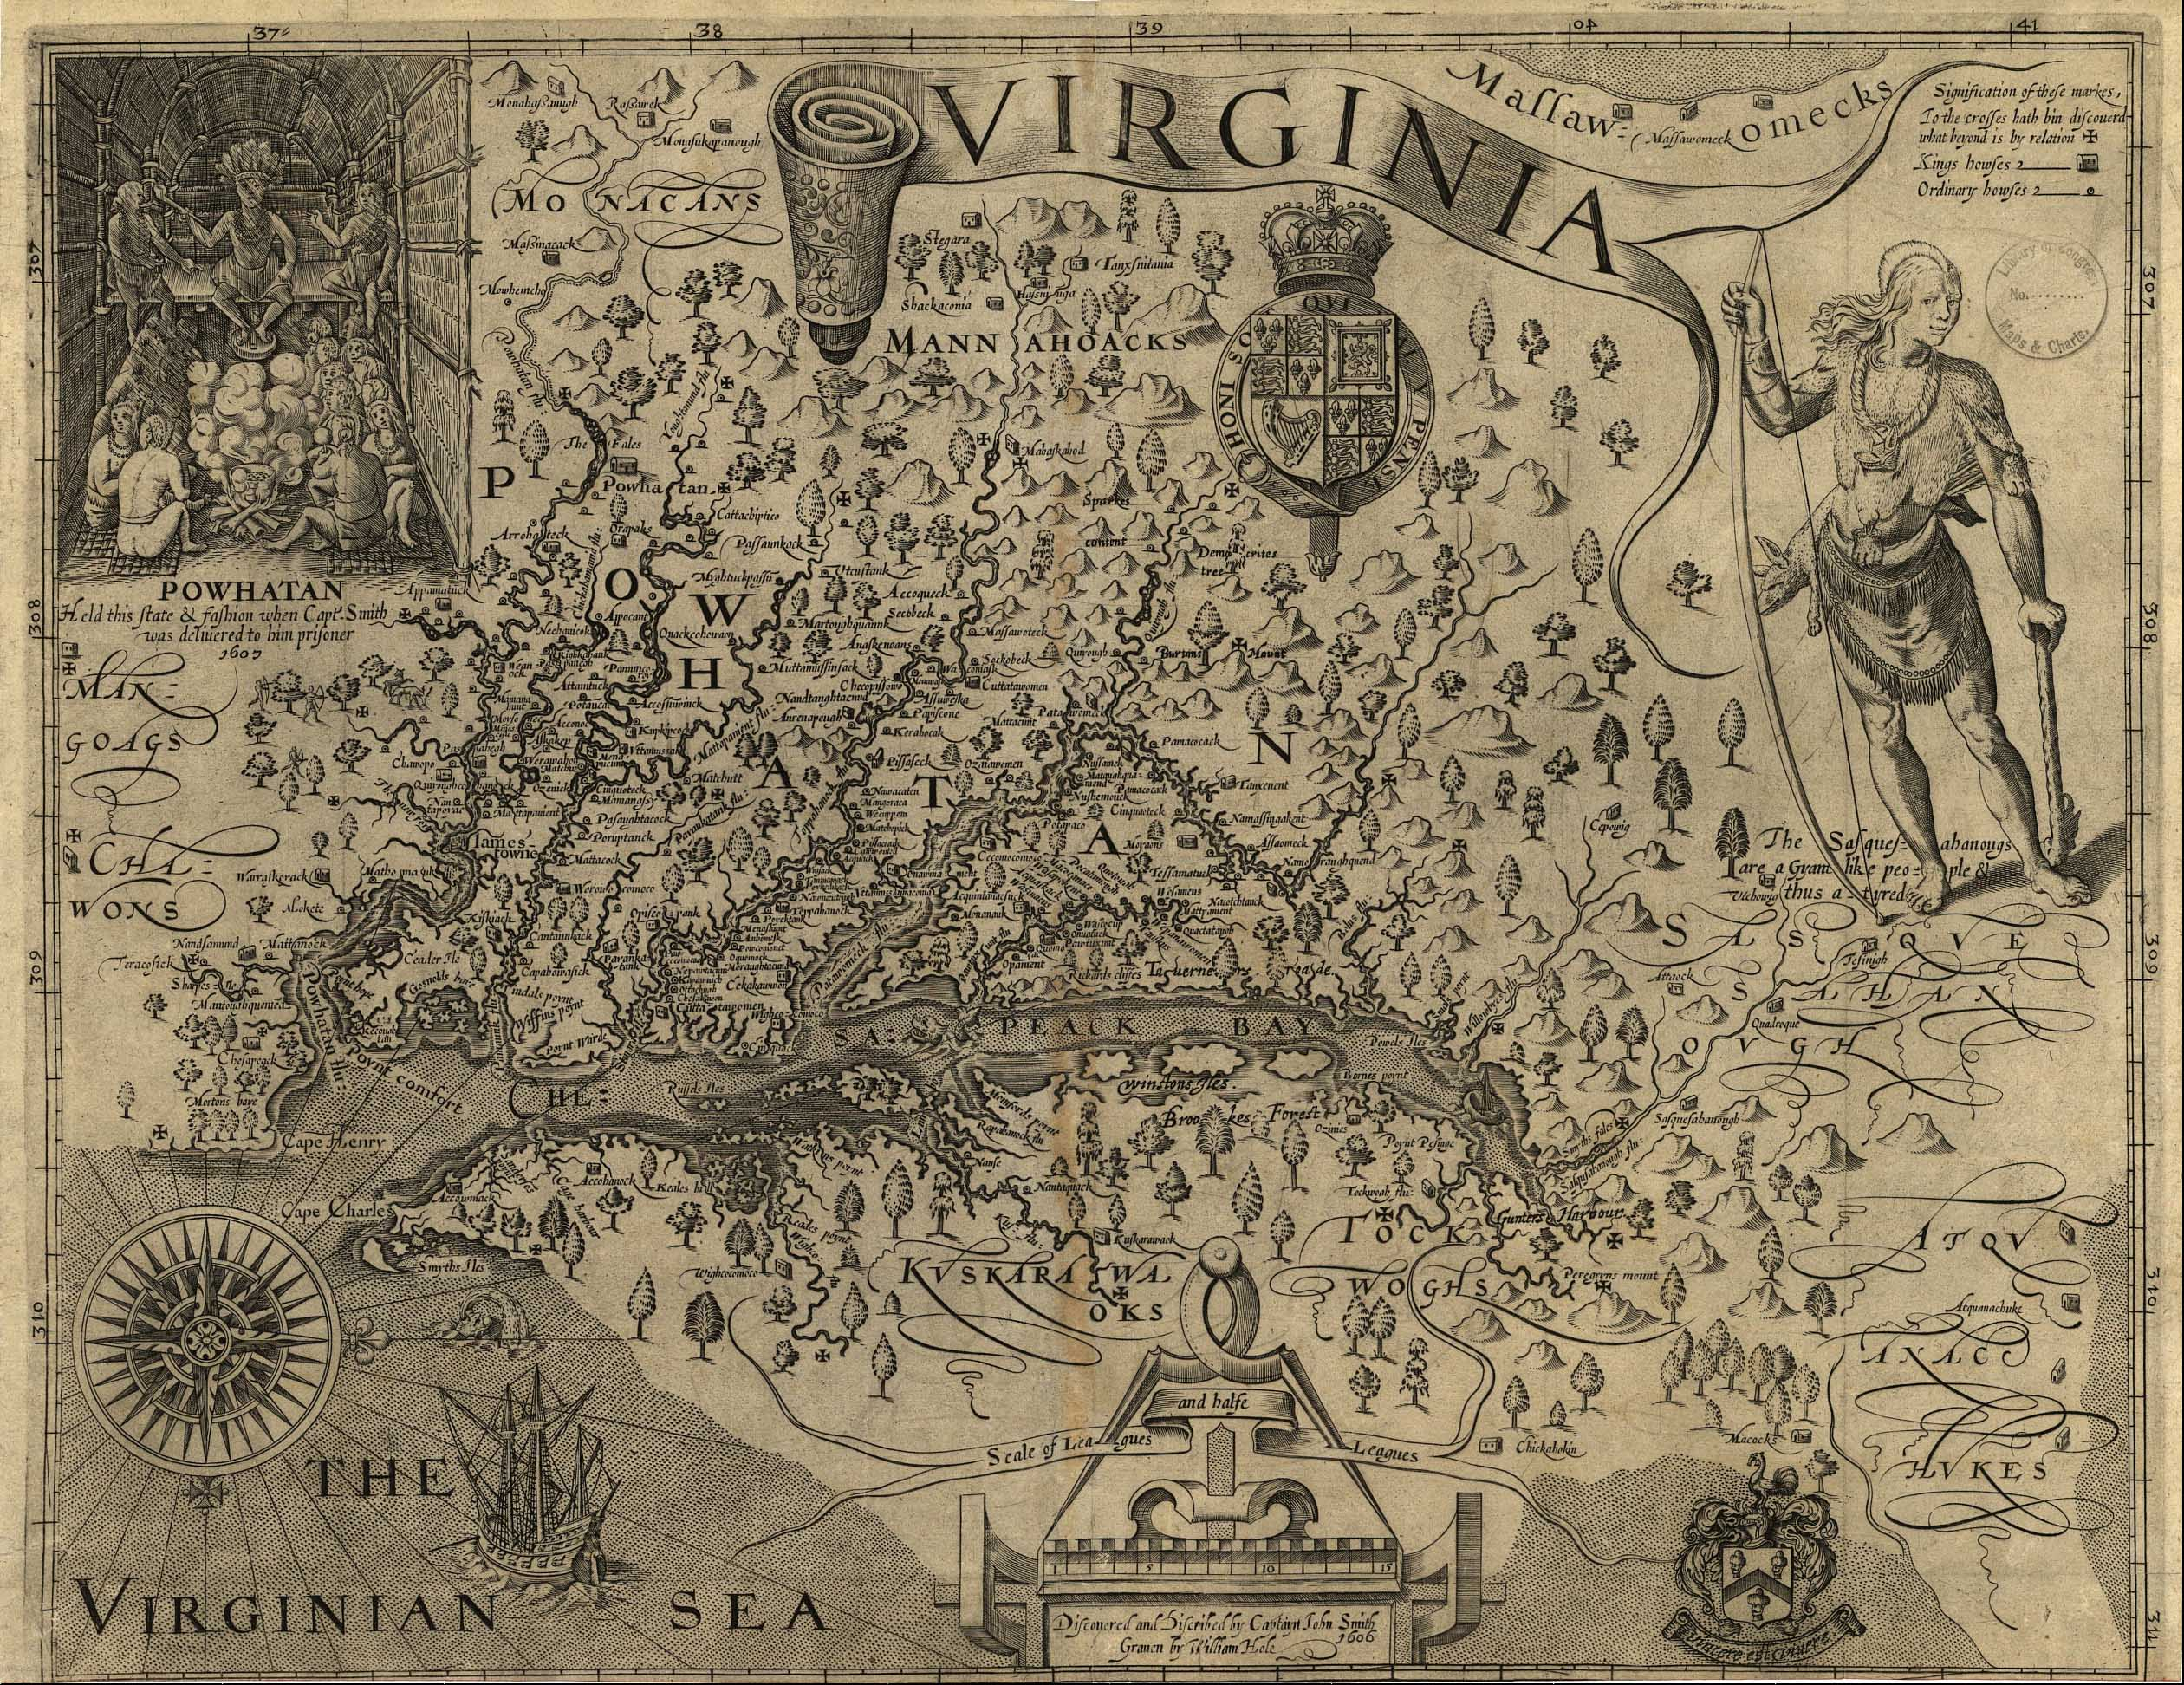 FileCapt John Smiths Map Of Virginia Jpg Wikimedia Commons - Map of virgina